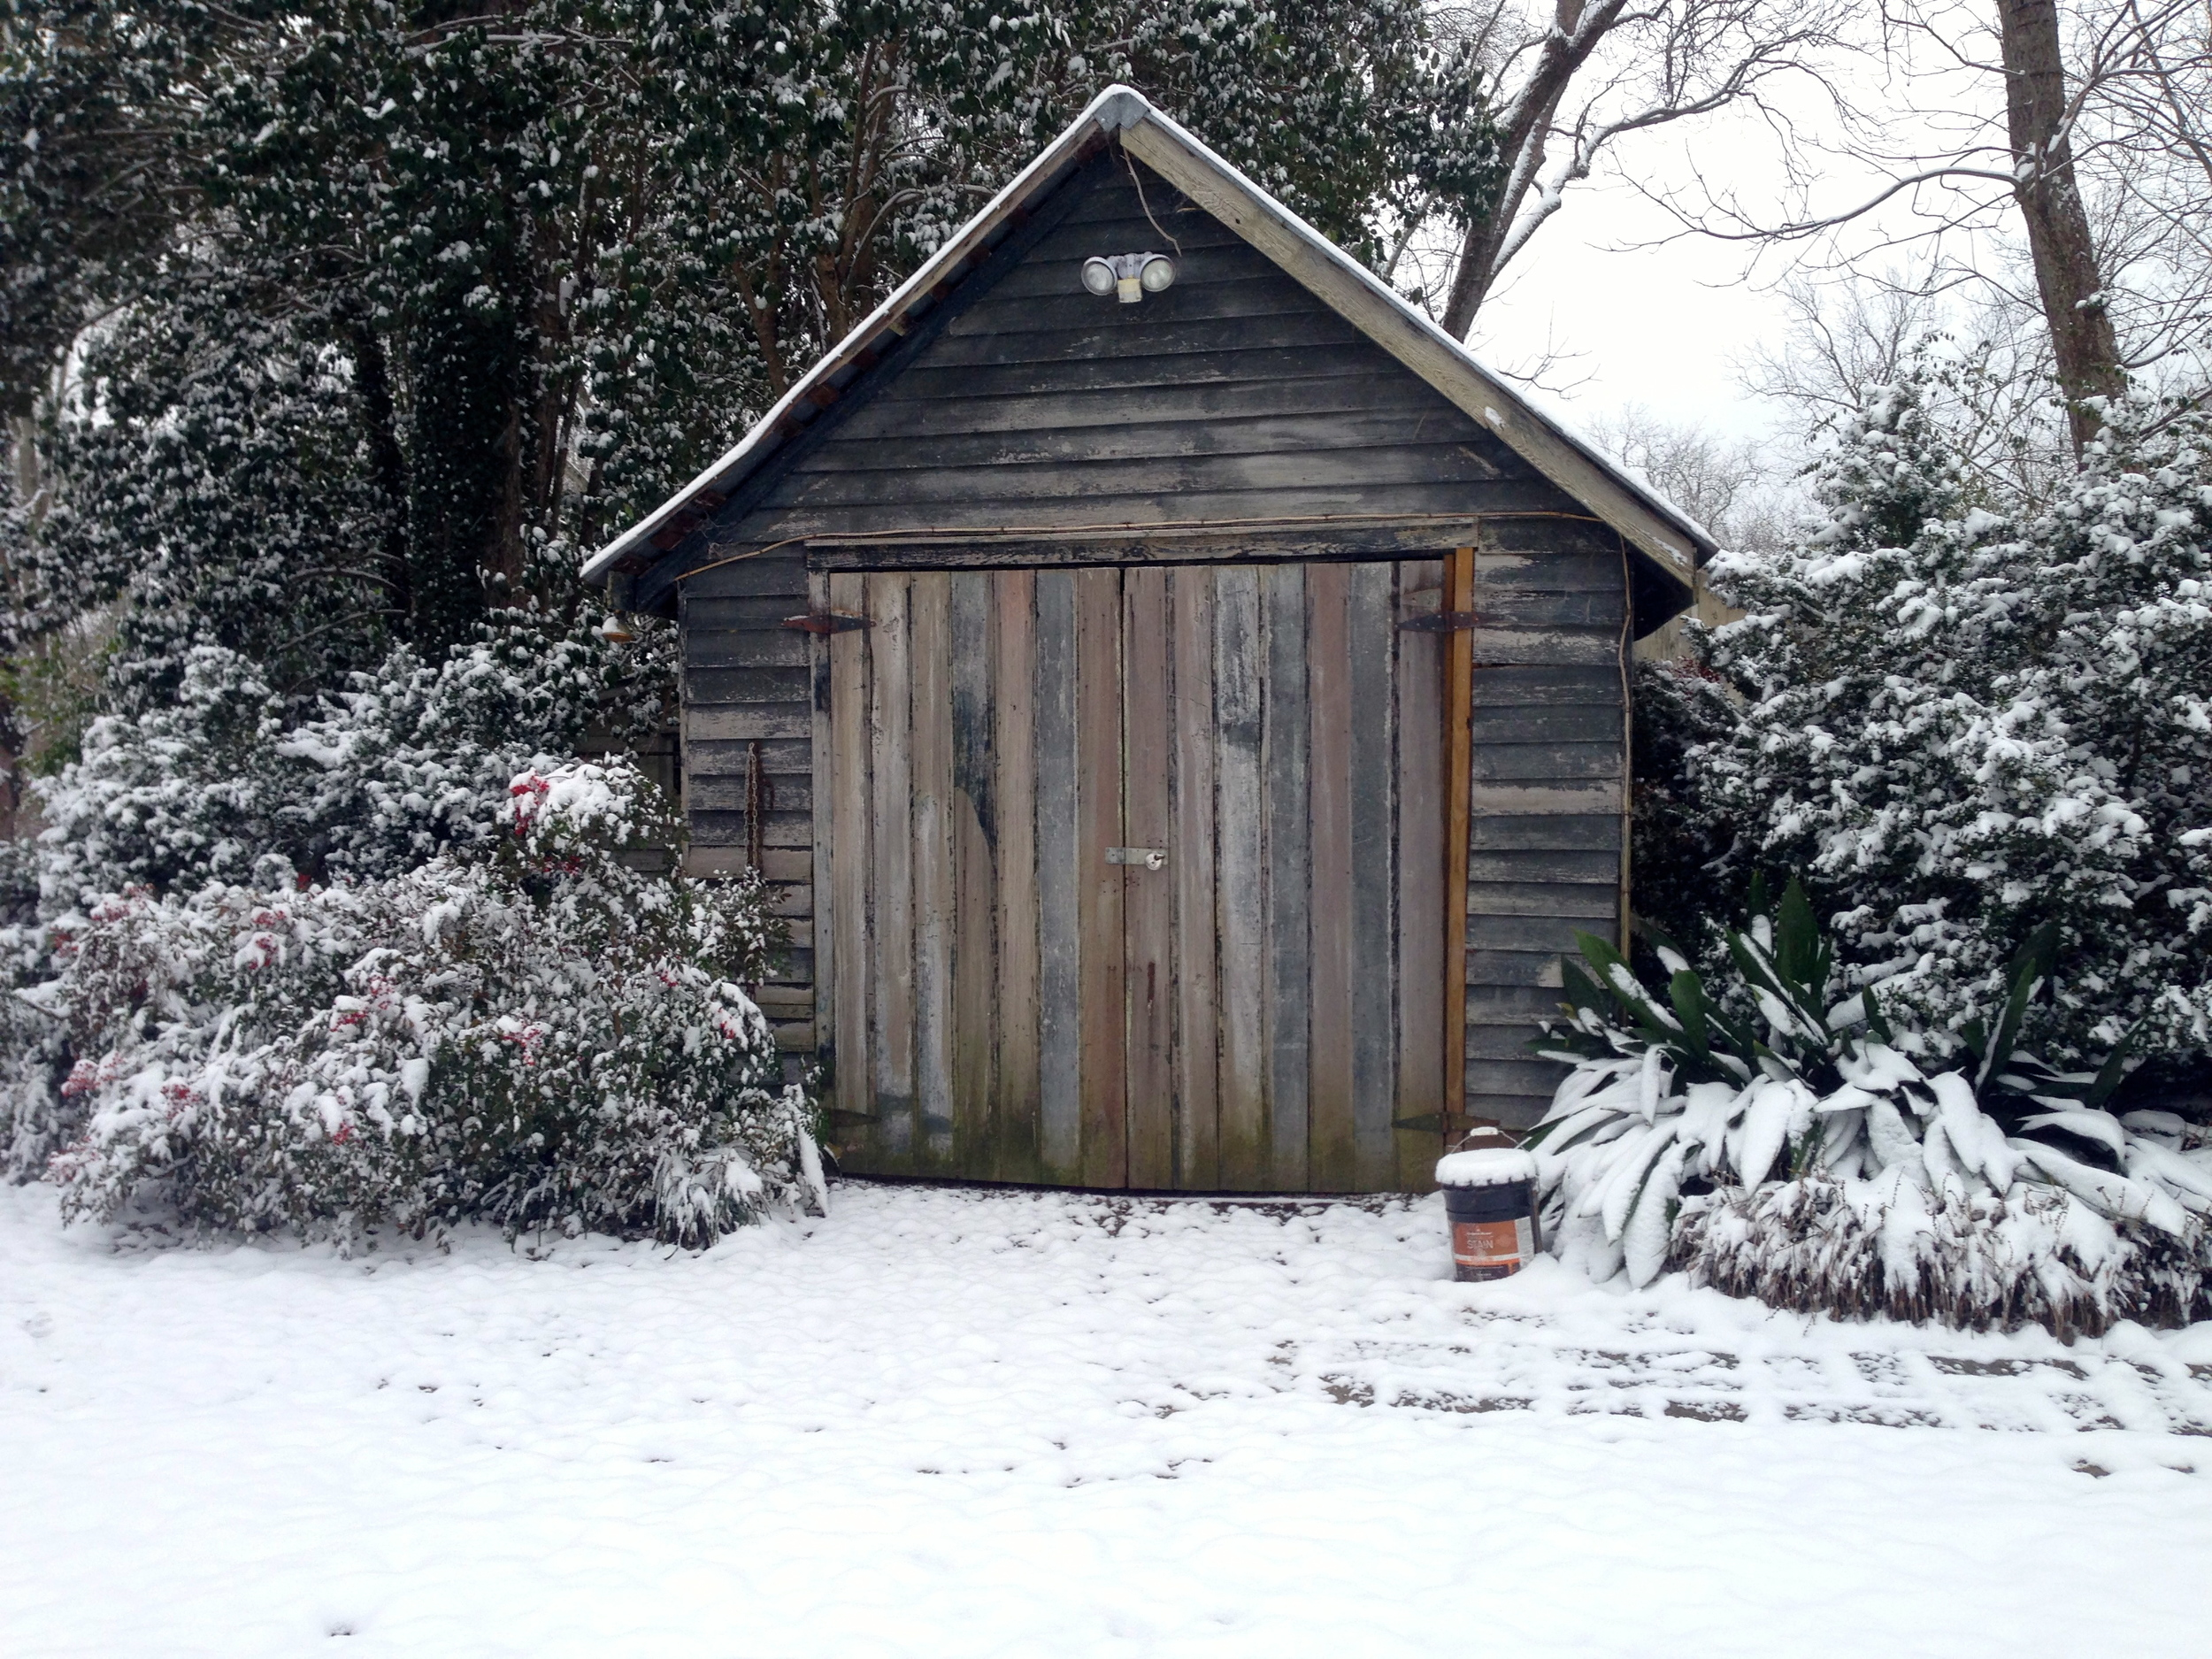 The old tool shed has its act cleaned up by the snow.